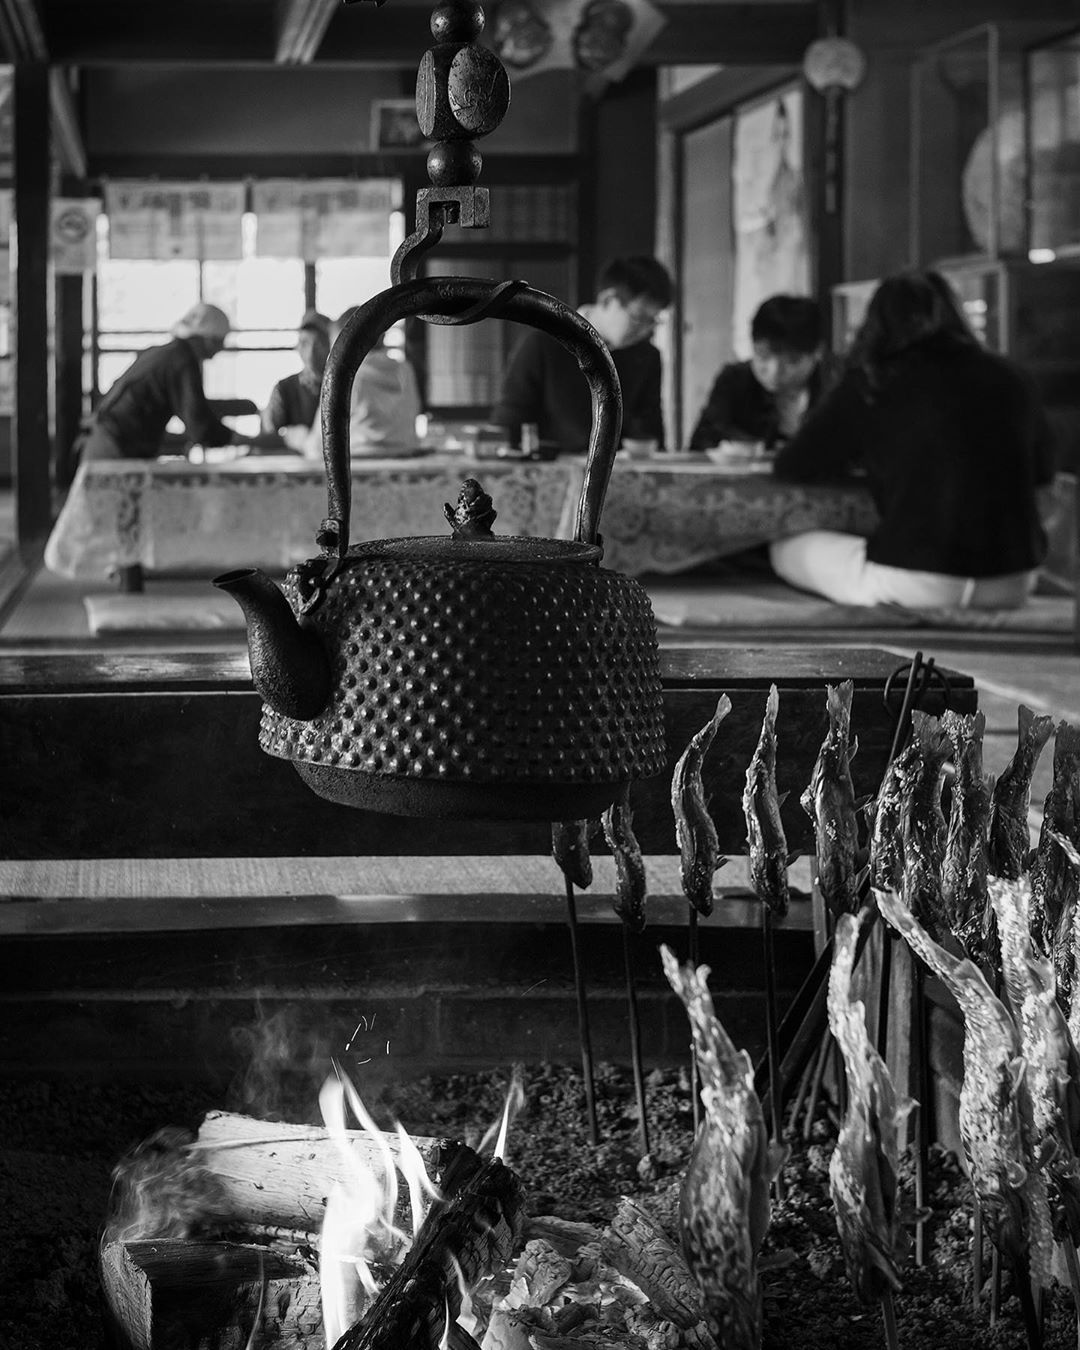 """Piya_photogallery on Instagram: """"Grilled fish at Ocuchi Juku is very fresh and healthy. You can eat all of the whole body. #ocuchijuku #fukushima #leicaphotography"""""""